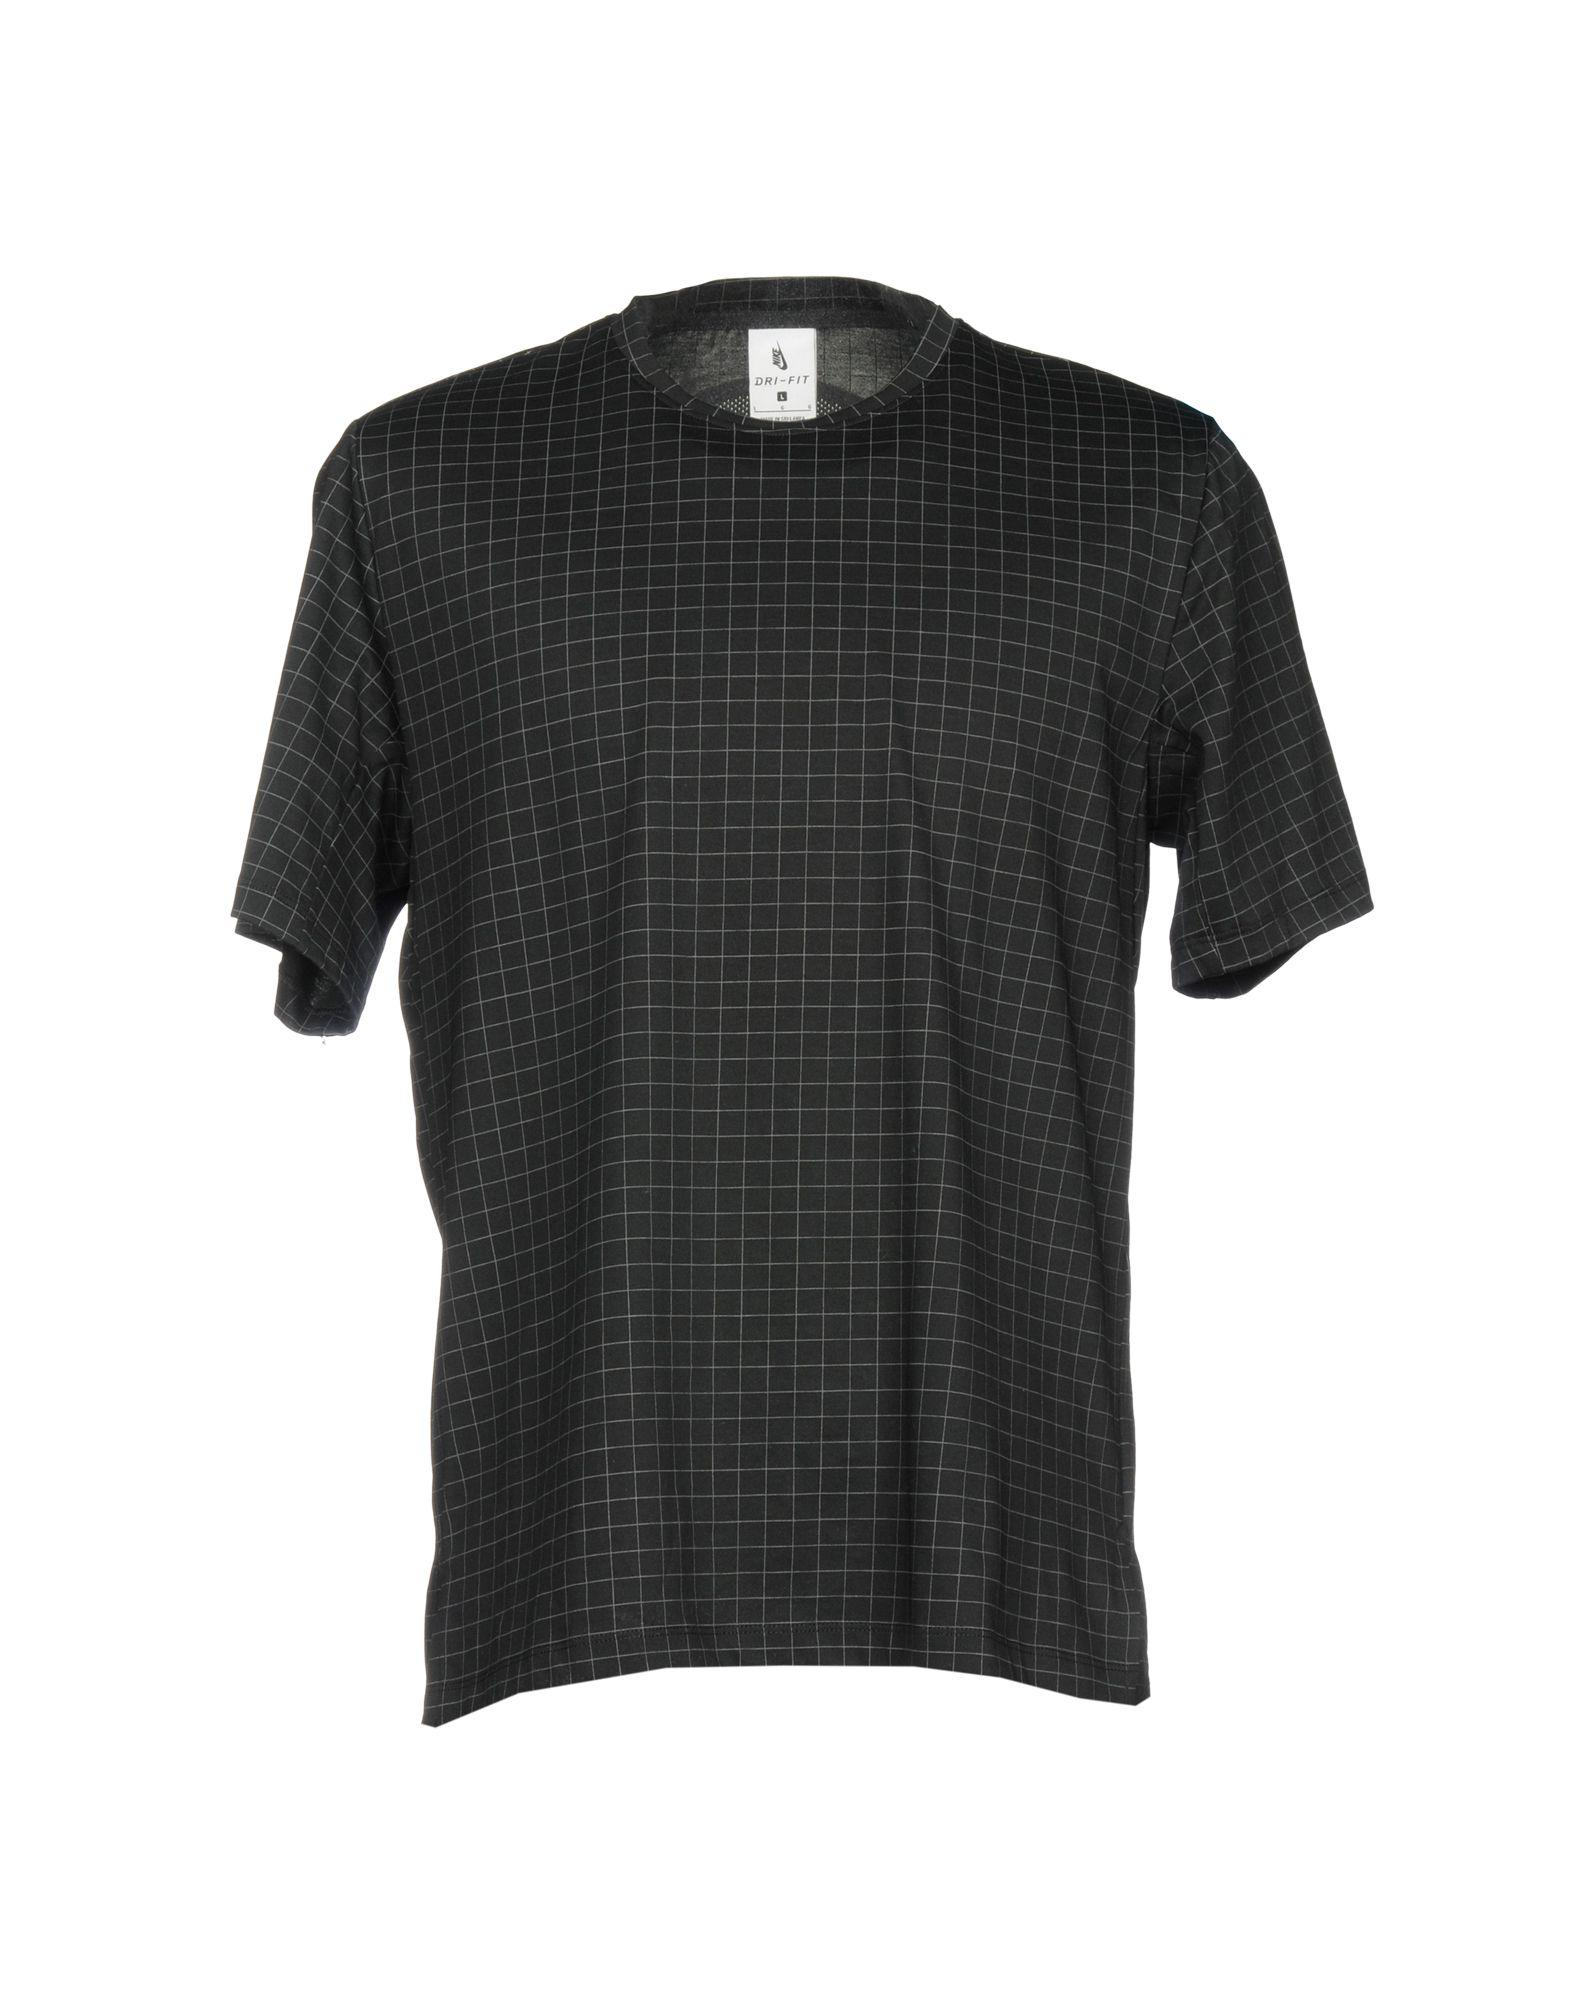 Nike T-shirts In Black